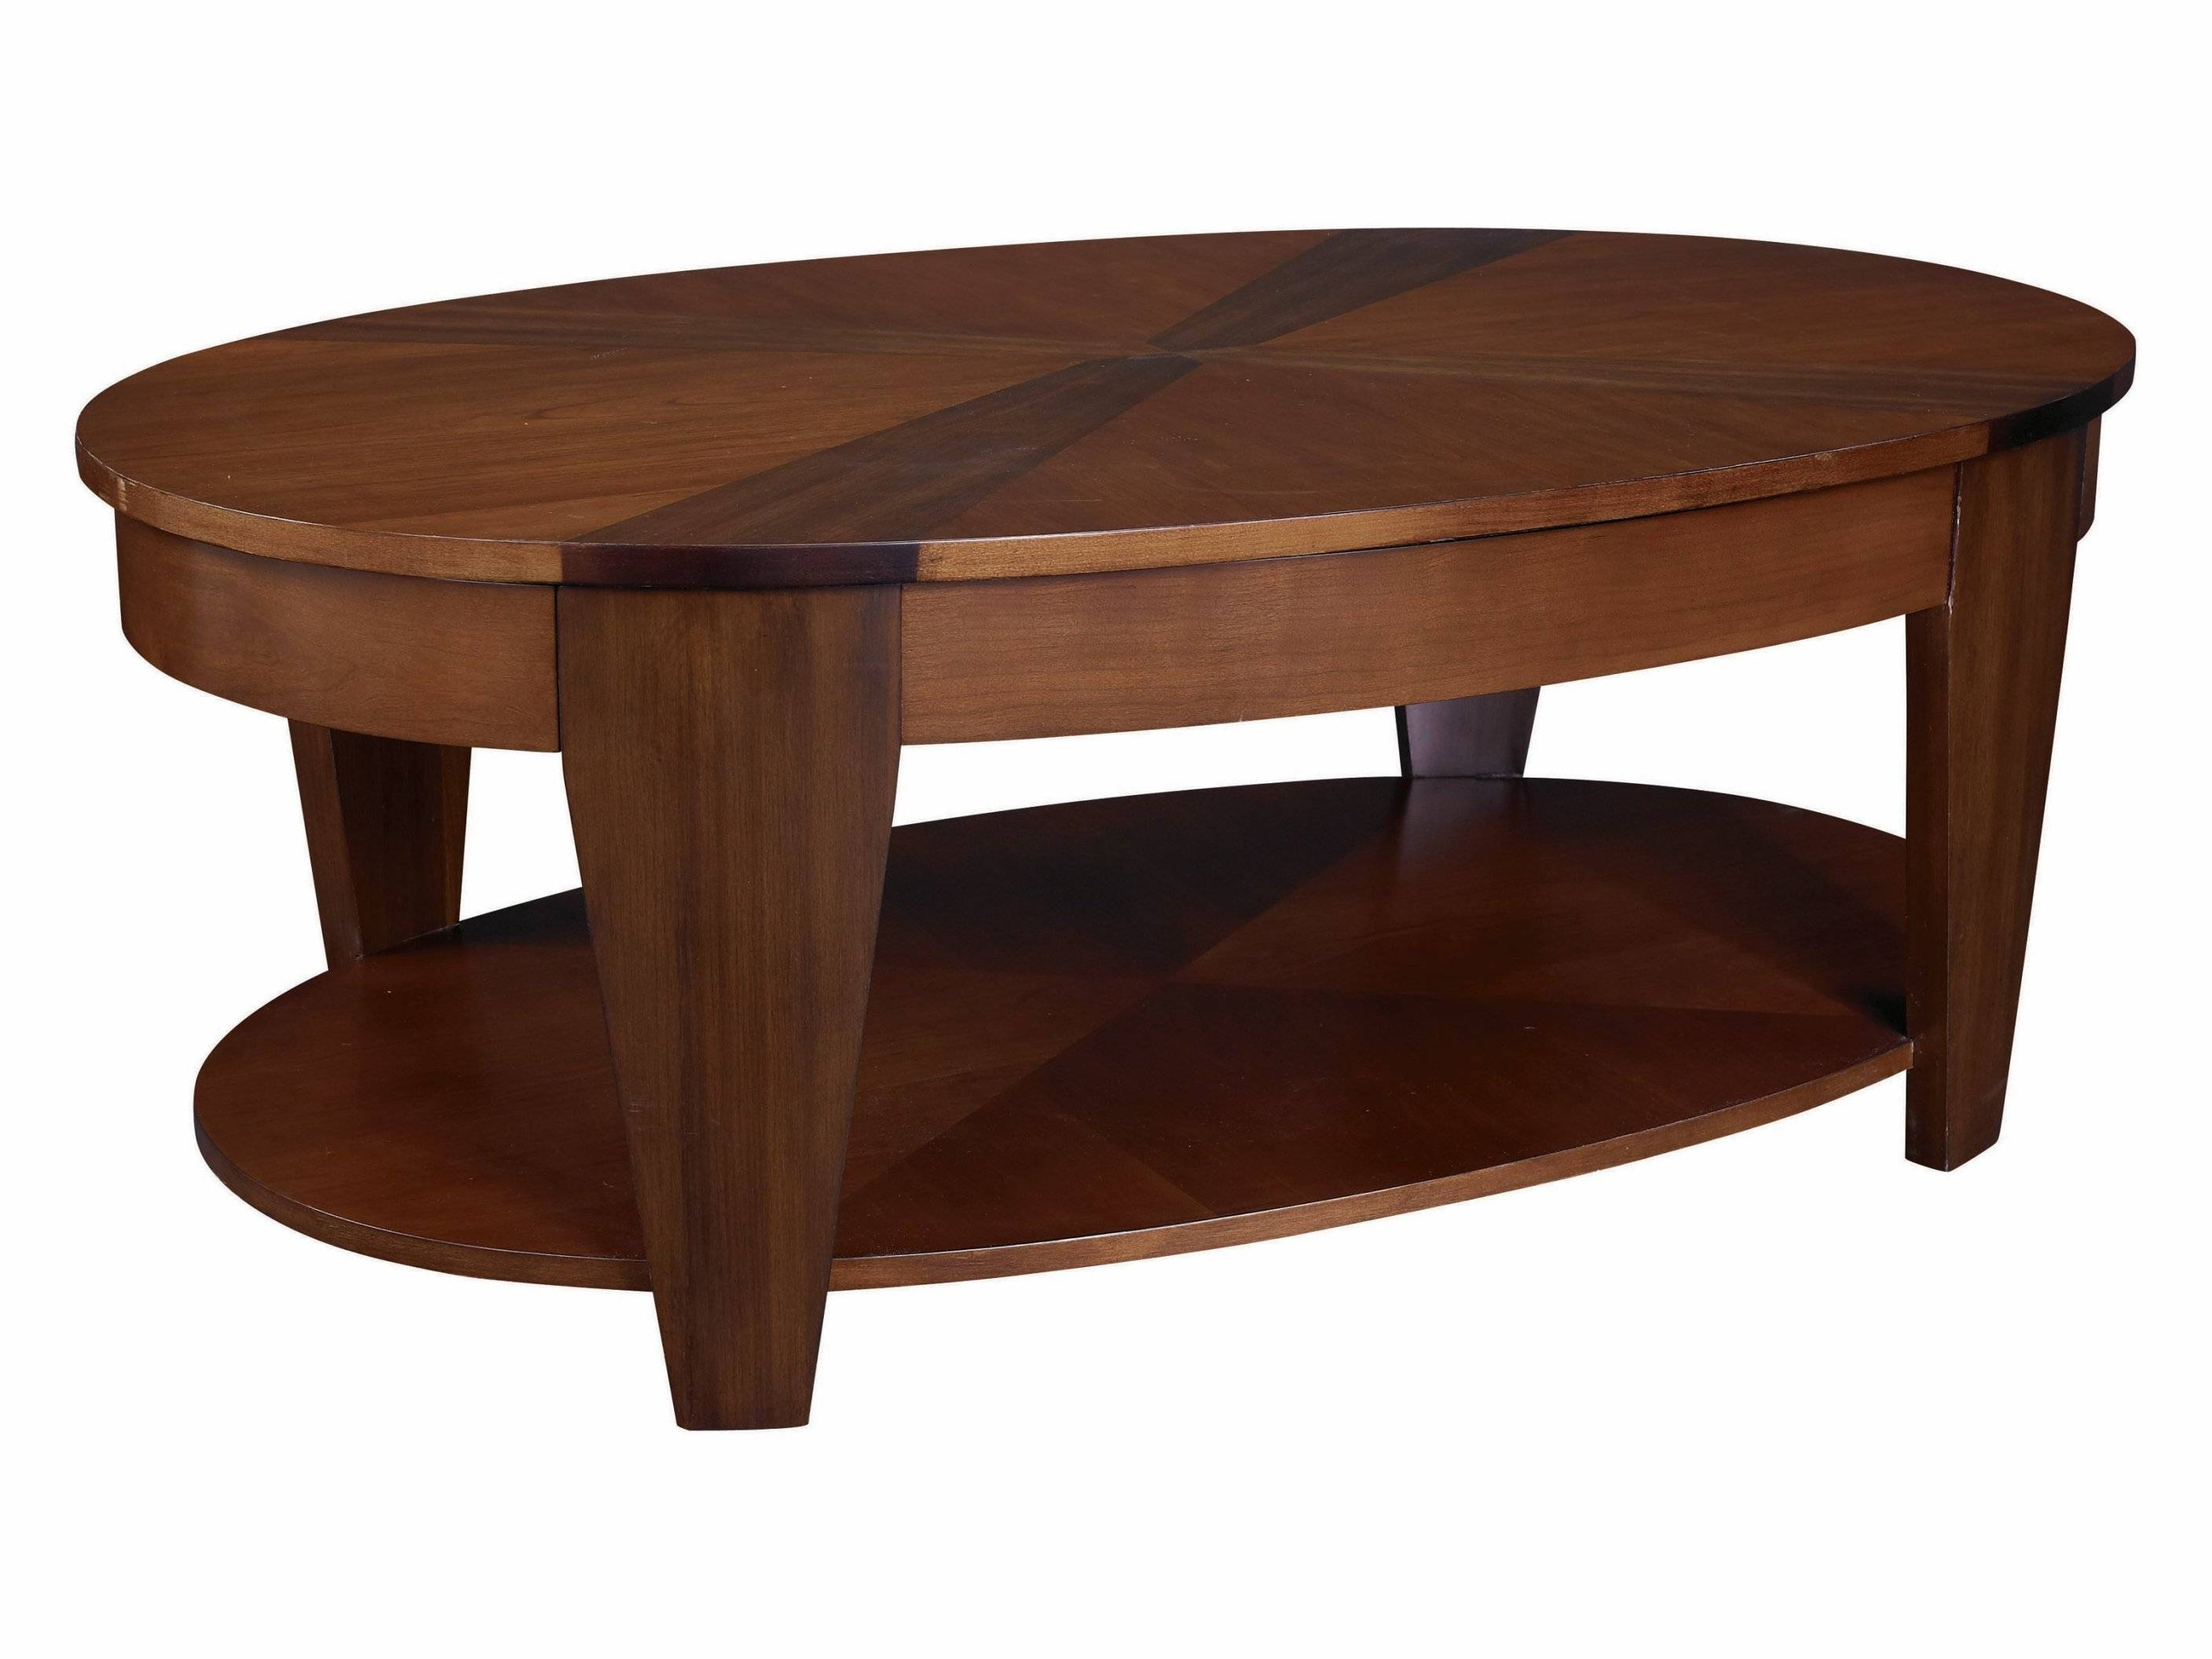 Coffee Table: Contemporary Rustic Wood Coffee Table Coffee Tables within Oval Wood Coffee Tables (Image 5 of 30)